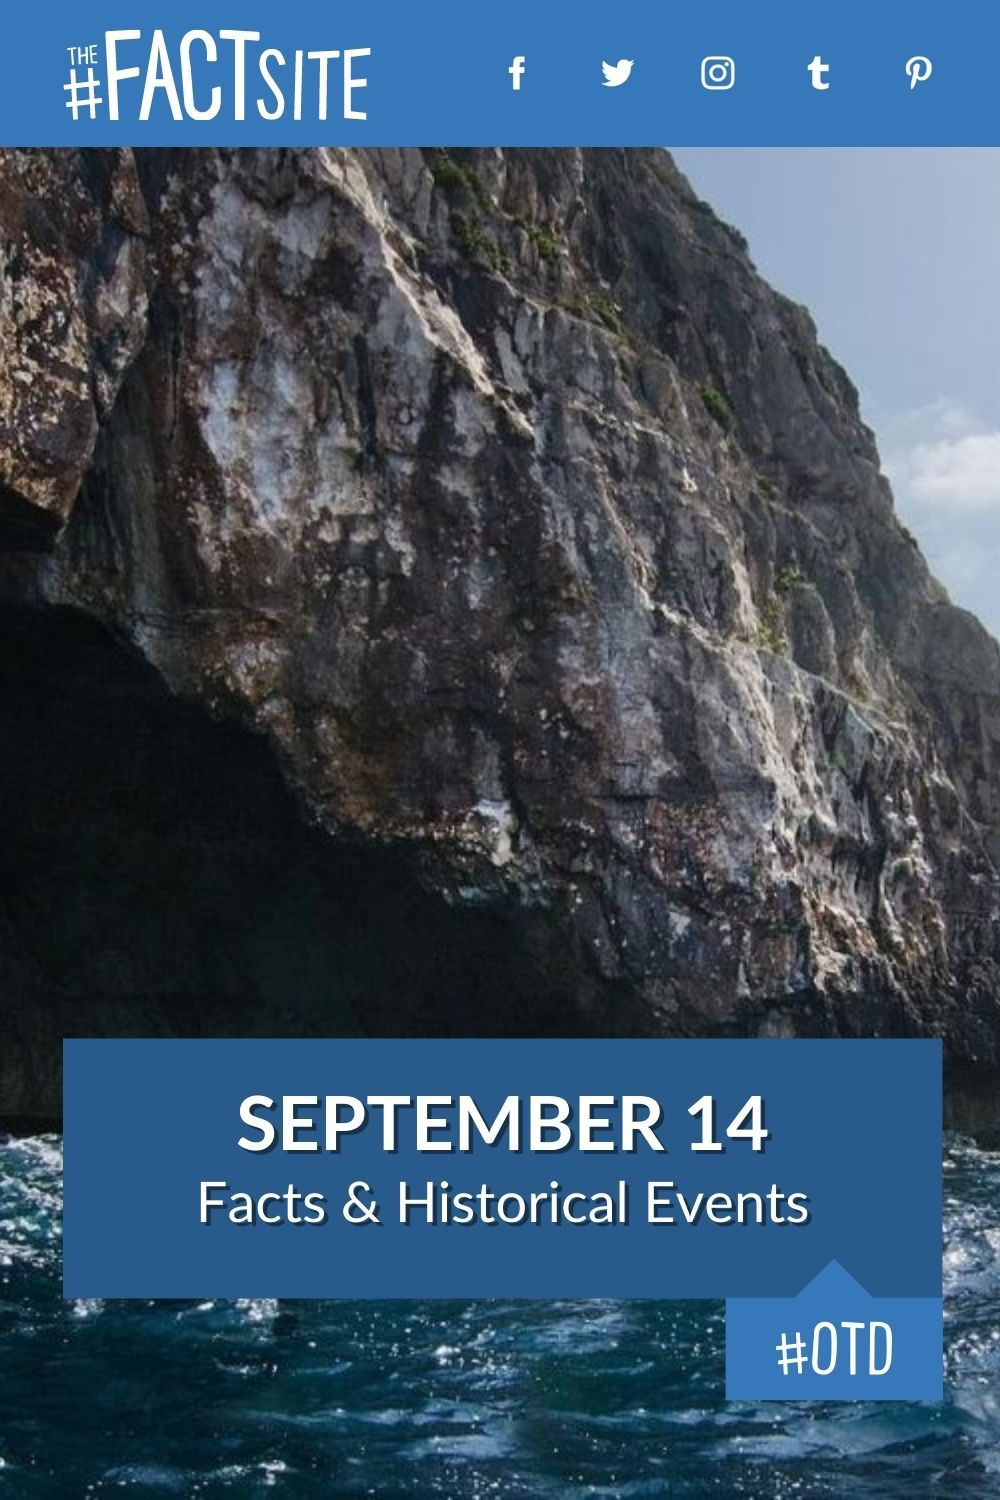 Facts & Historic Events That Happened on September 14